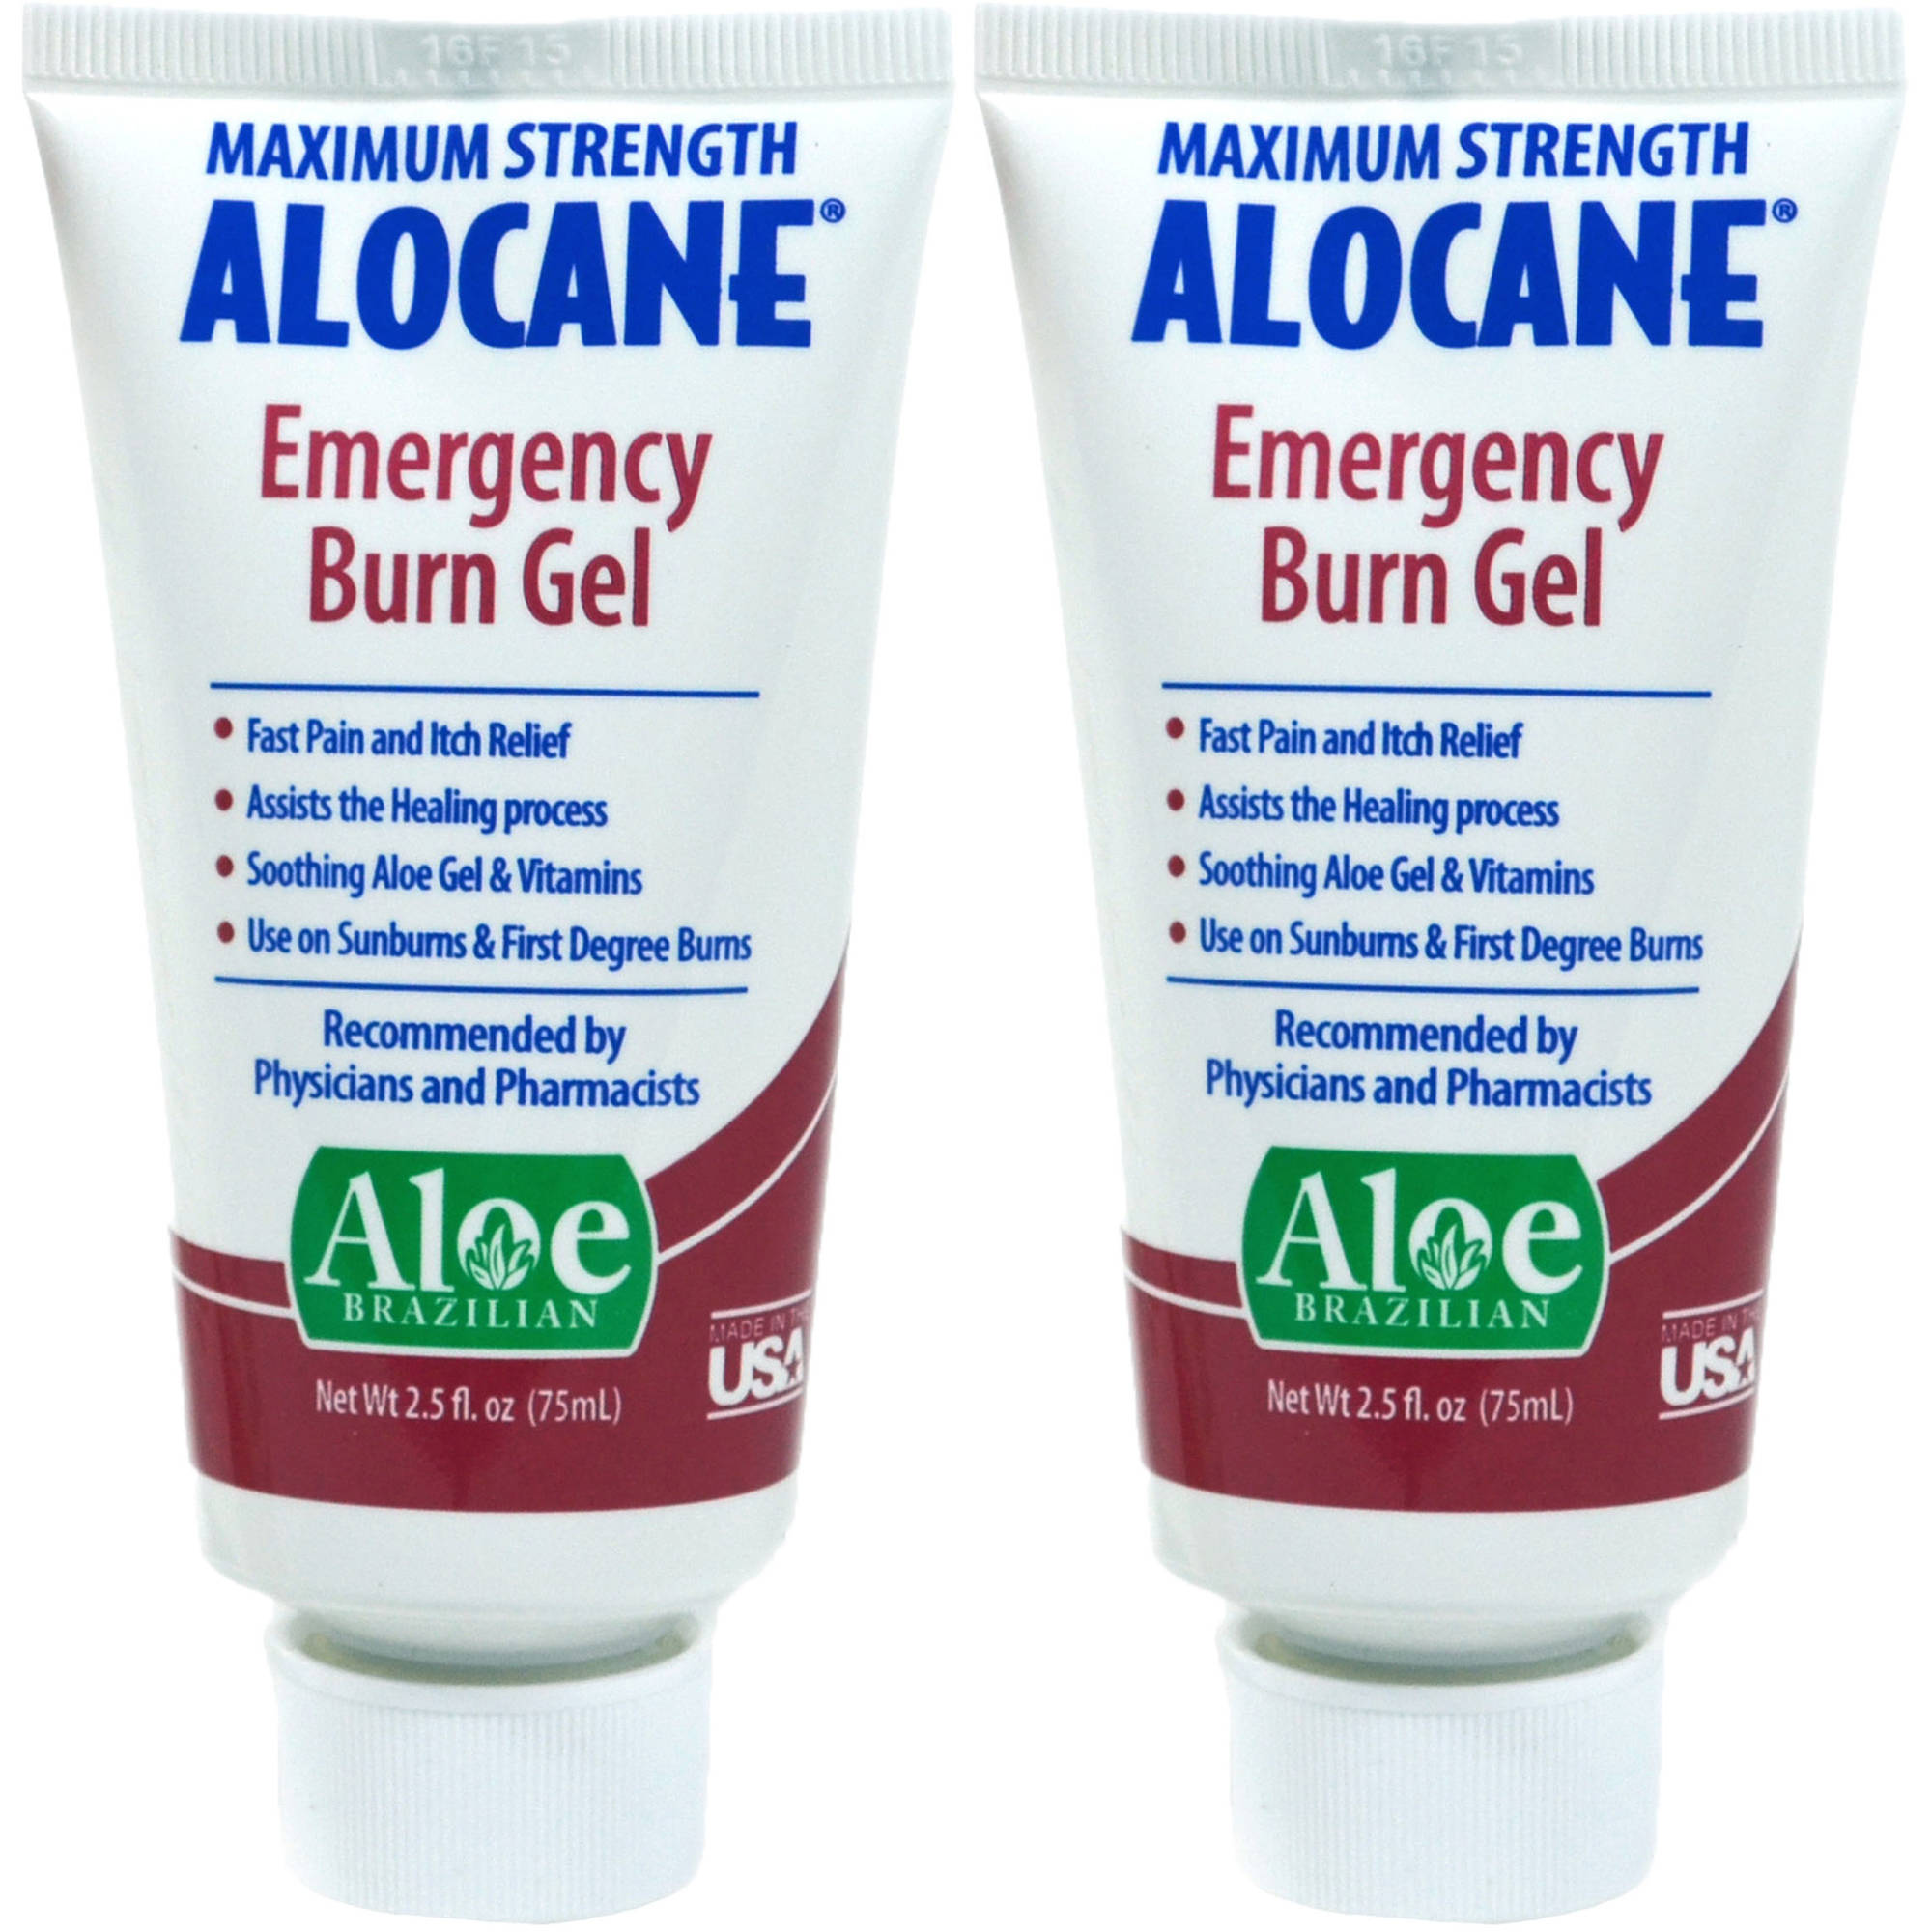 Alocane Maximum Strength Emergency Burn Gel, 2.5 fl oz, 2 count